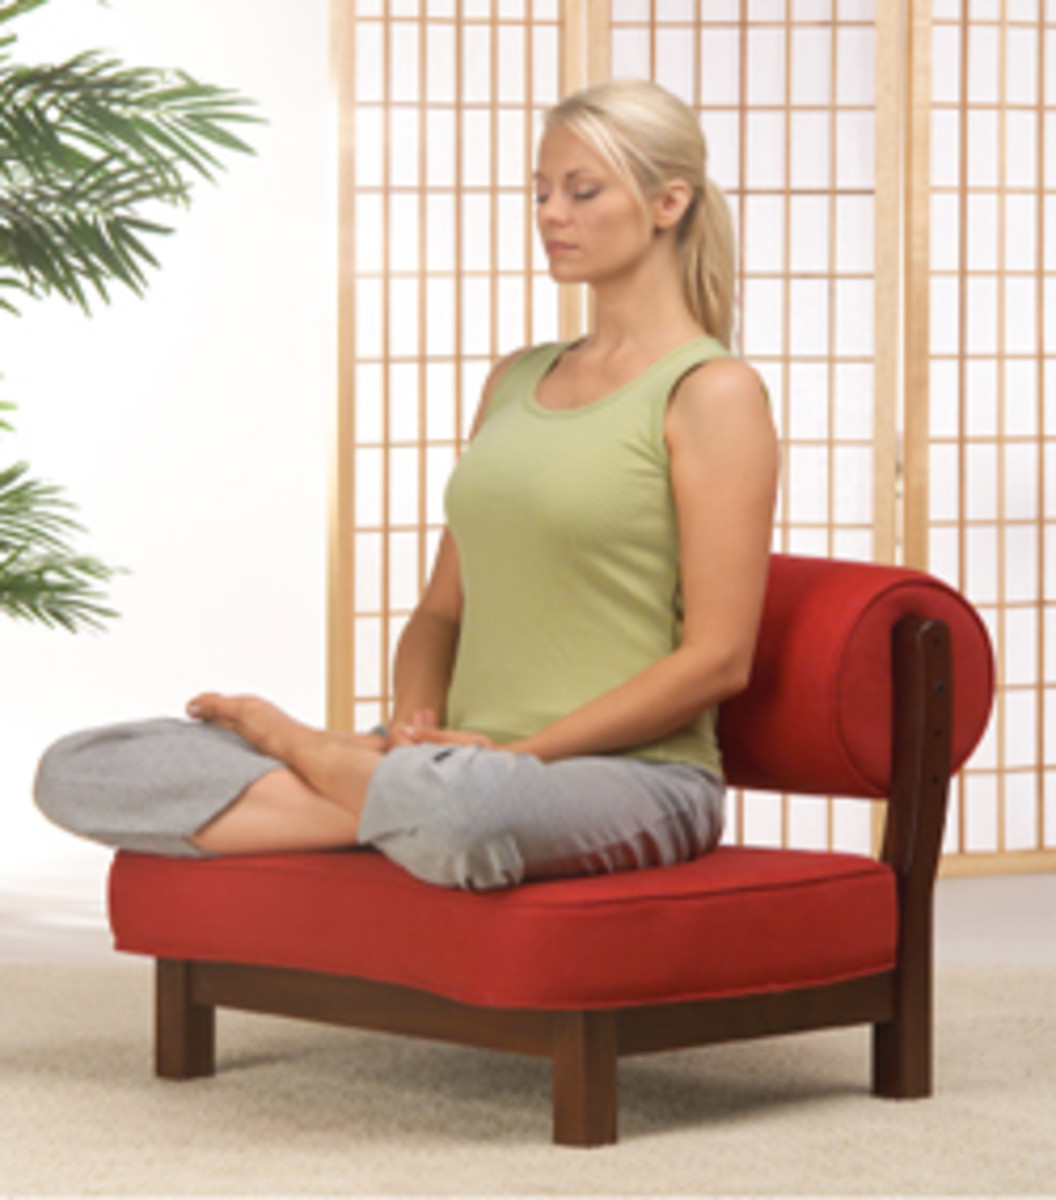 The Rama Meditation Chair from Zen By Design